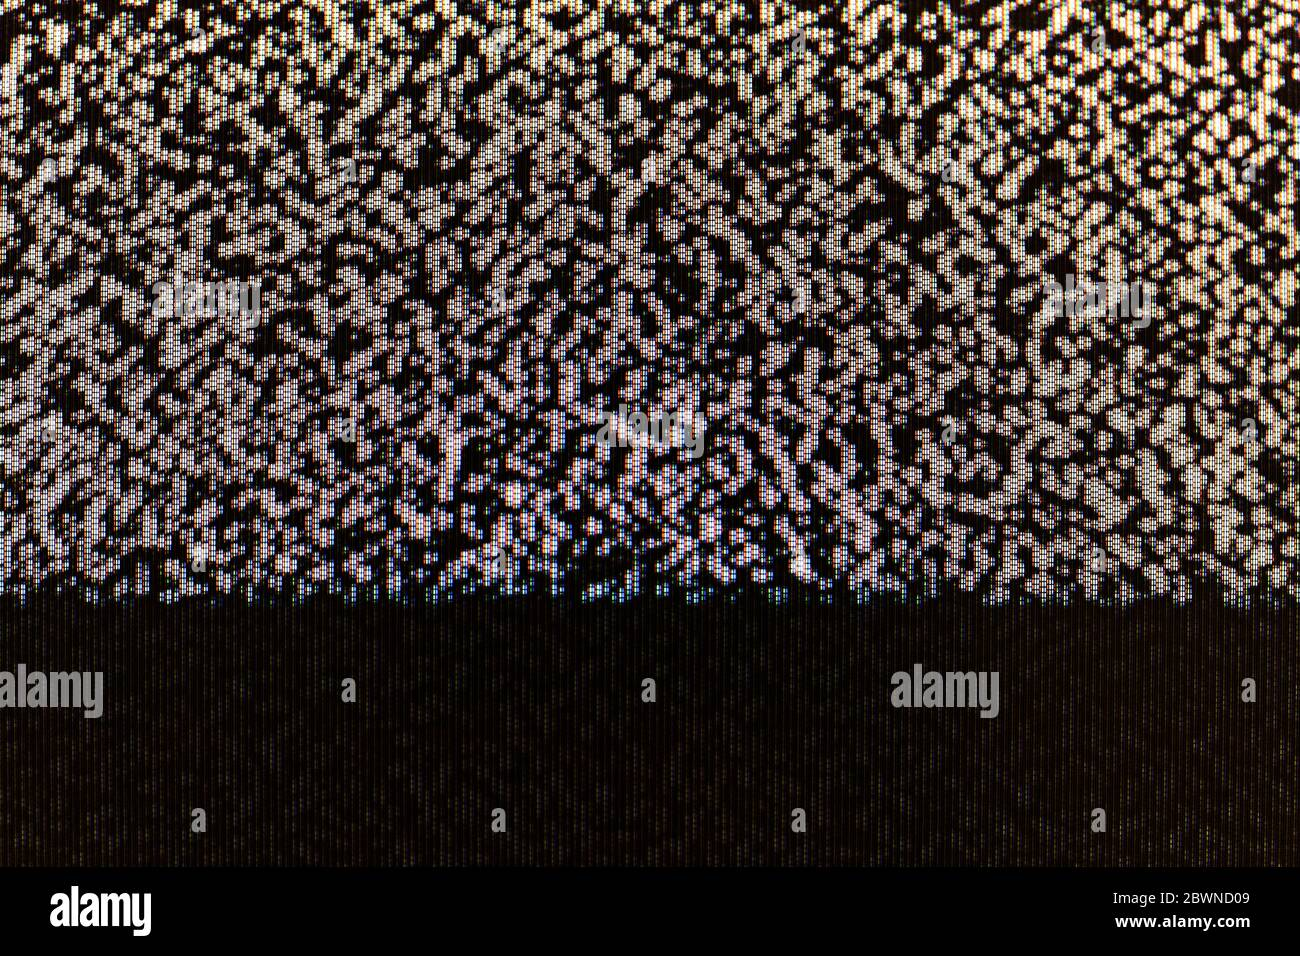 TV screen static abstract pixel glitch analog noise pixelized background texture, copy space. Retro pixelated television screen, scary creepy monitor Stock Photo